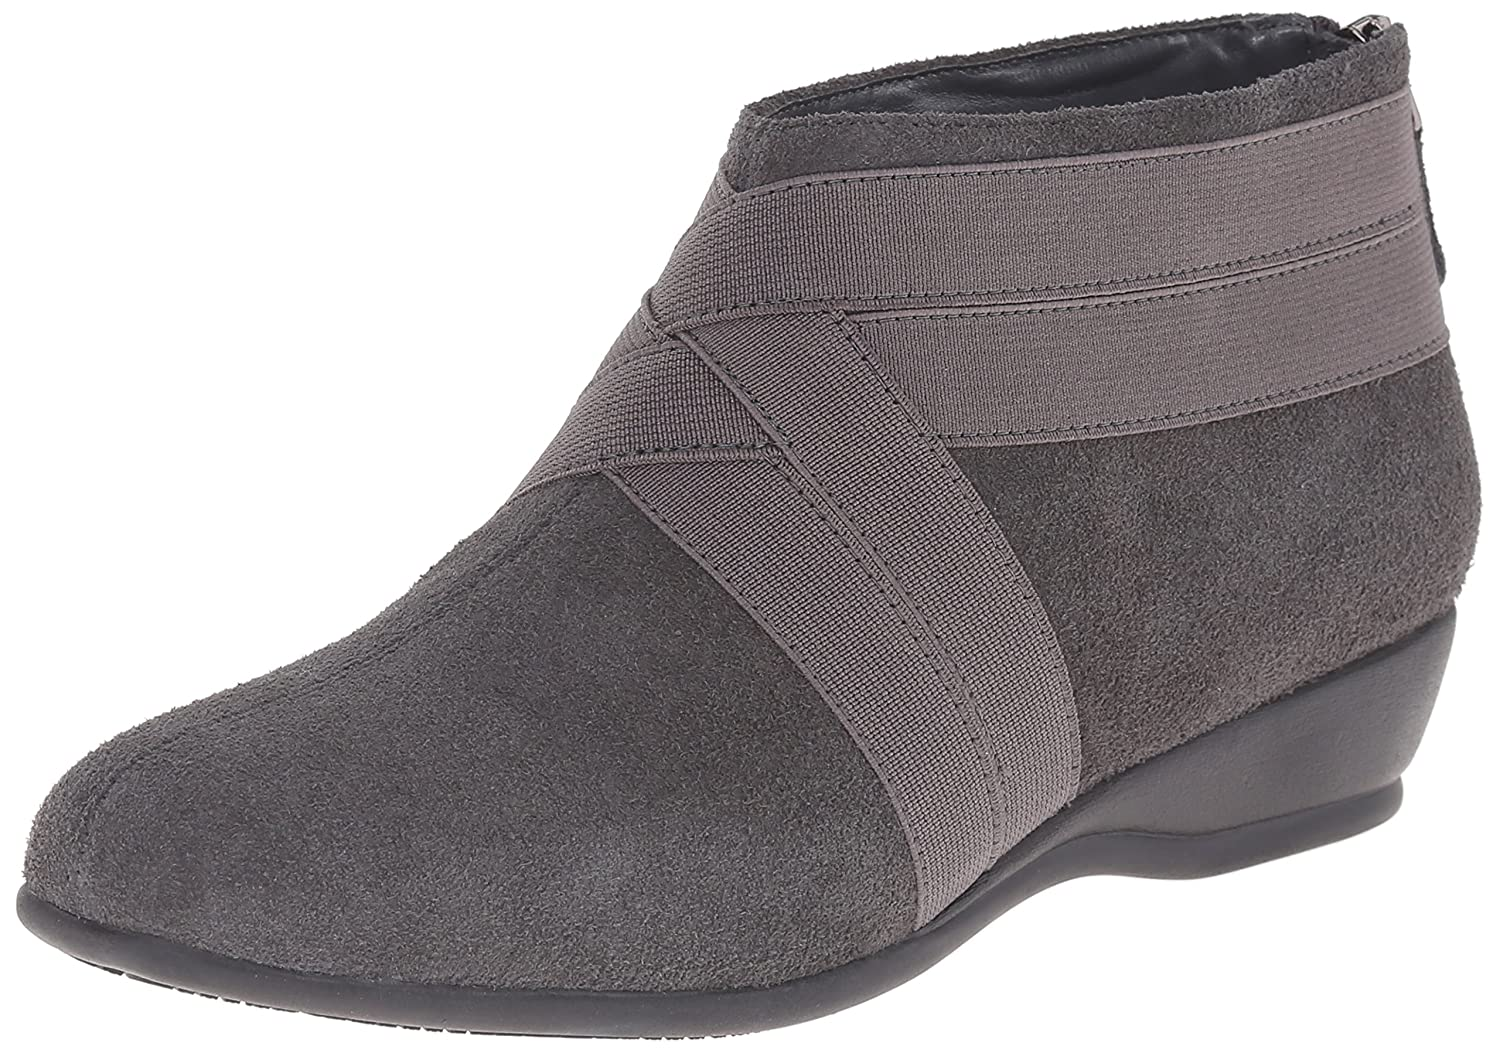 Trotters Women's Latch Boot B00RZSPY60 8 N US|Dark Grey Suede